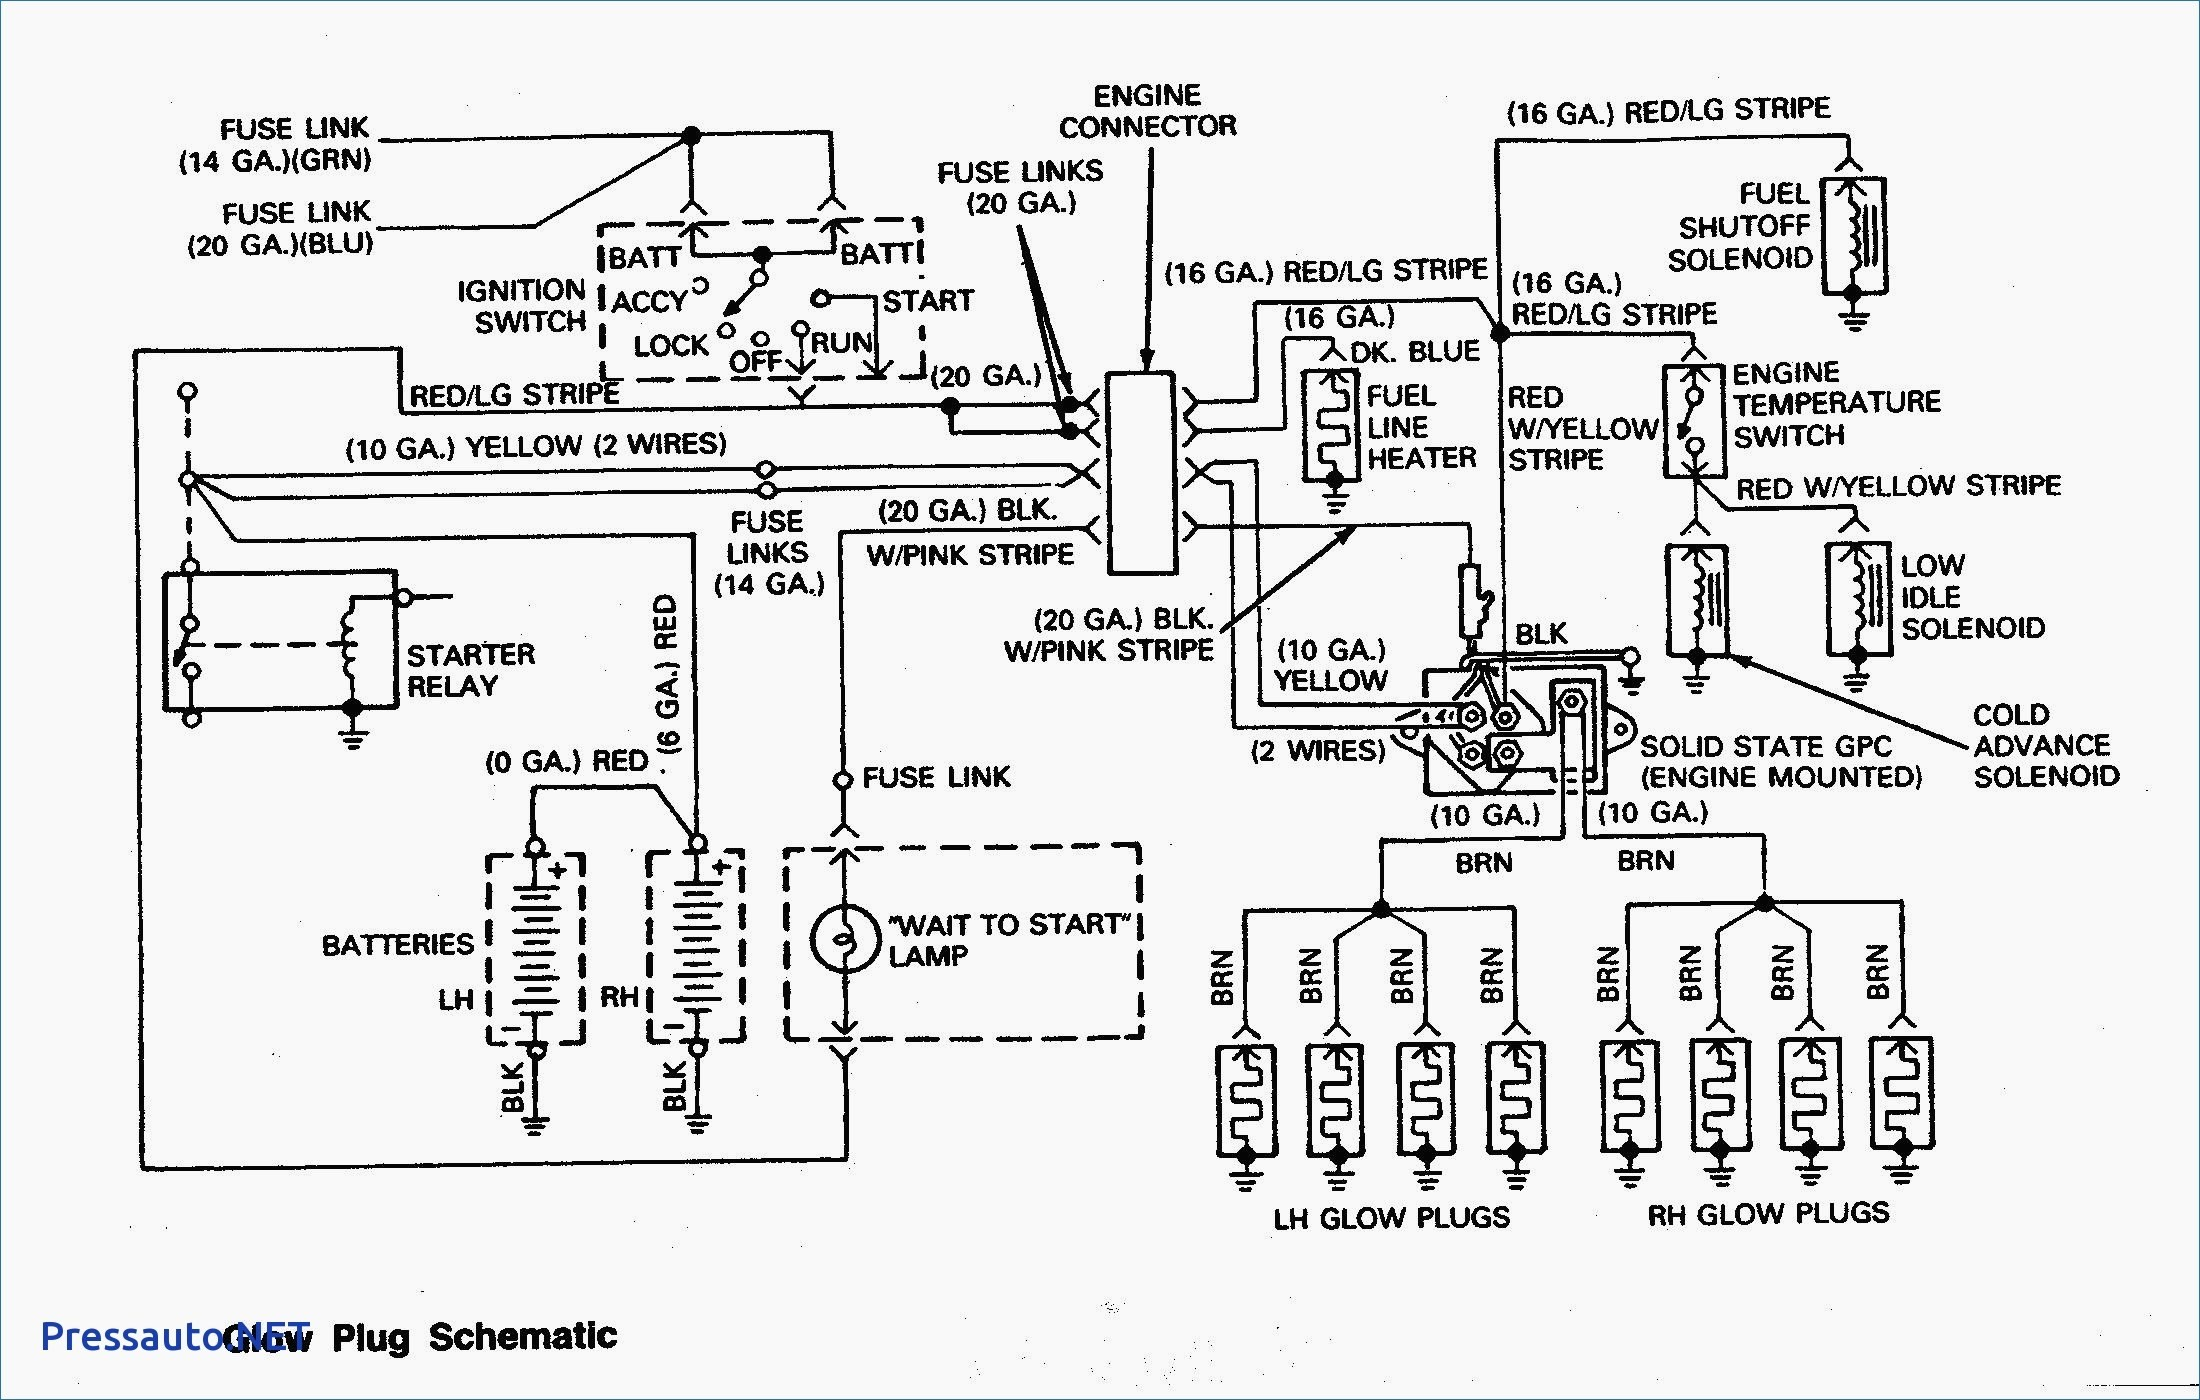 Ford 7 3 diesel engine diagram 2 my wiring diagram car george s website a look at an engine parts a car automotive engine diagram ccuart Images